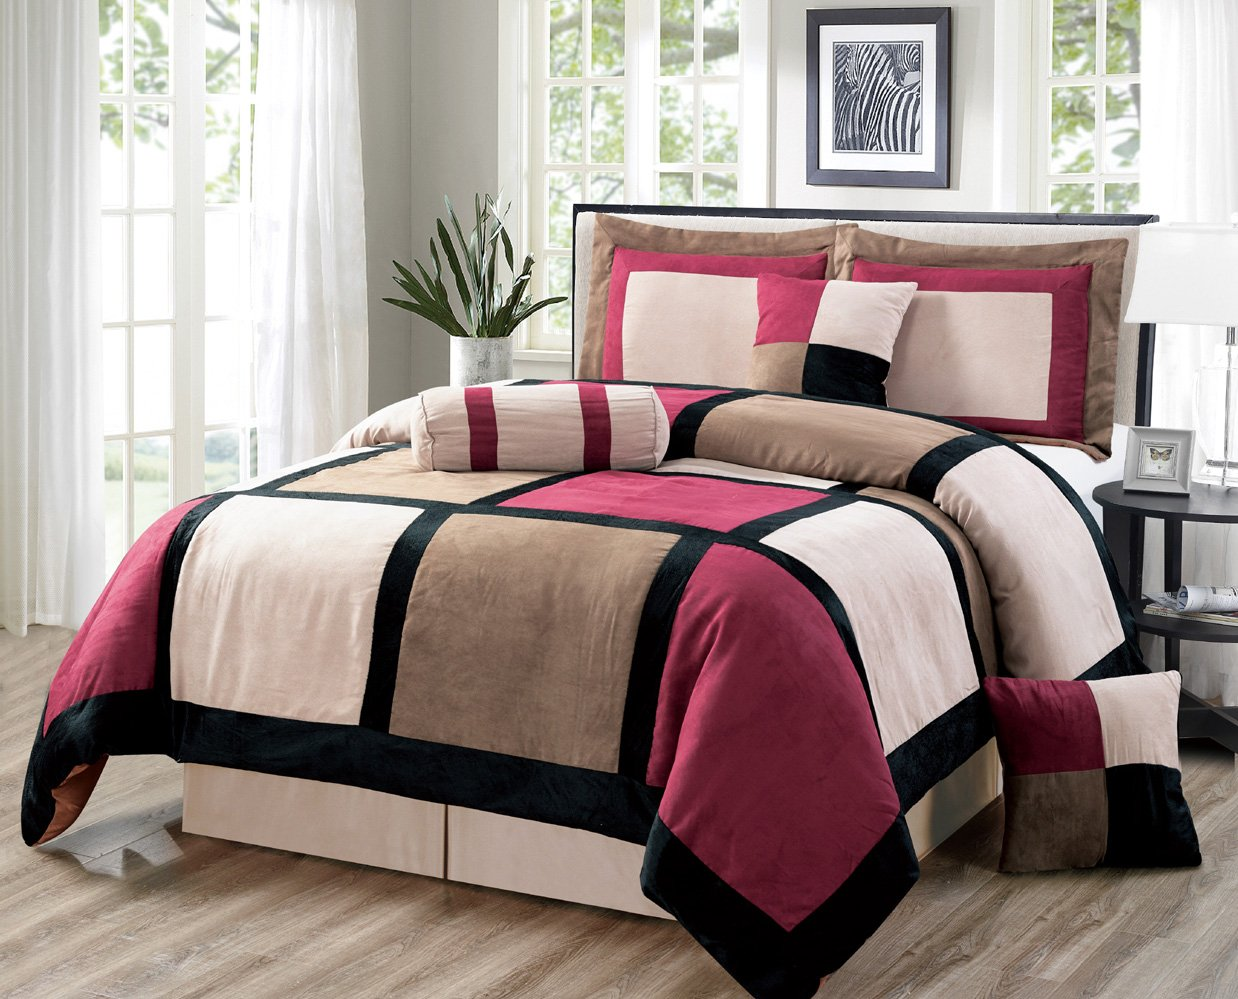 Pink and black bedding - Amazon Com Oversize Black Grey Comforter Set Micro Suede Patchwork Bed In A Bag Queen Size Bedding Home Kitchen